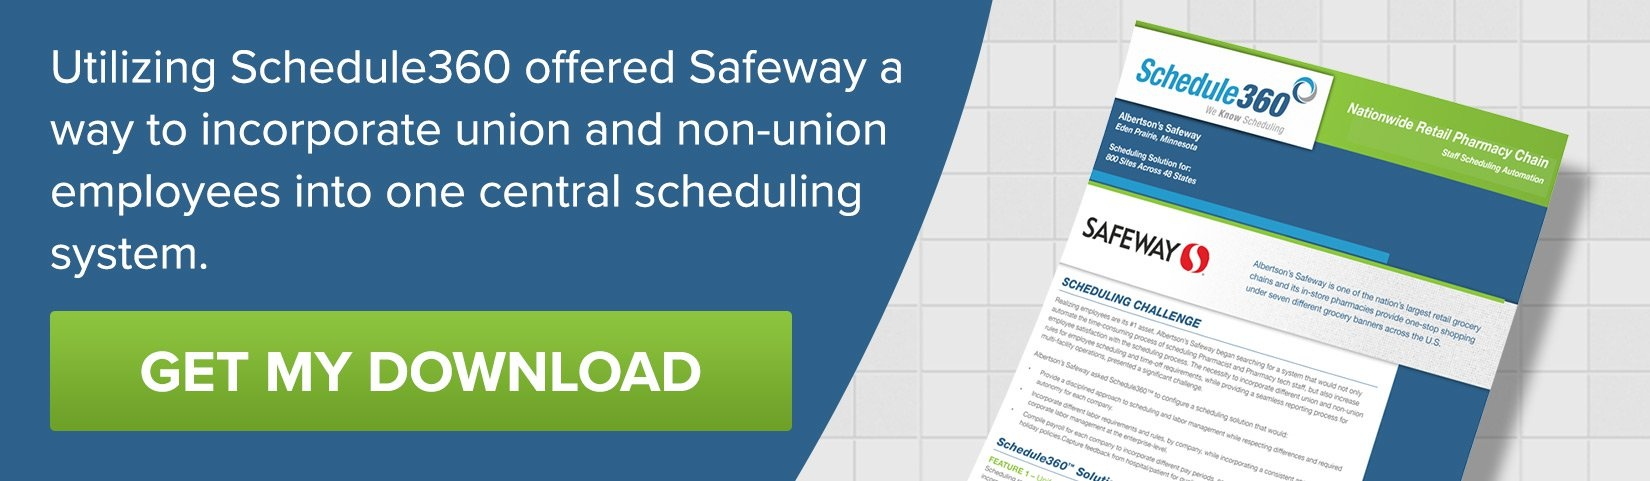 Utilizing Schedule360 offered Safeway a way to incorporate union and non-union employees into one central scheduling system.